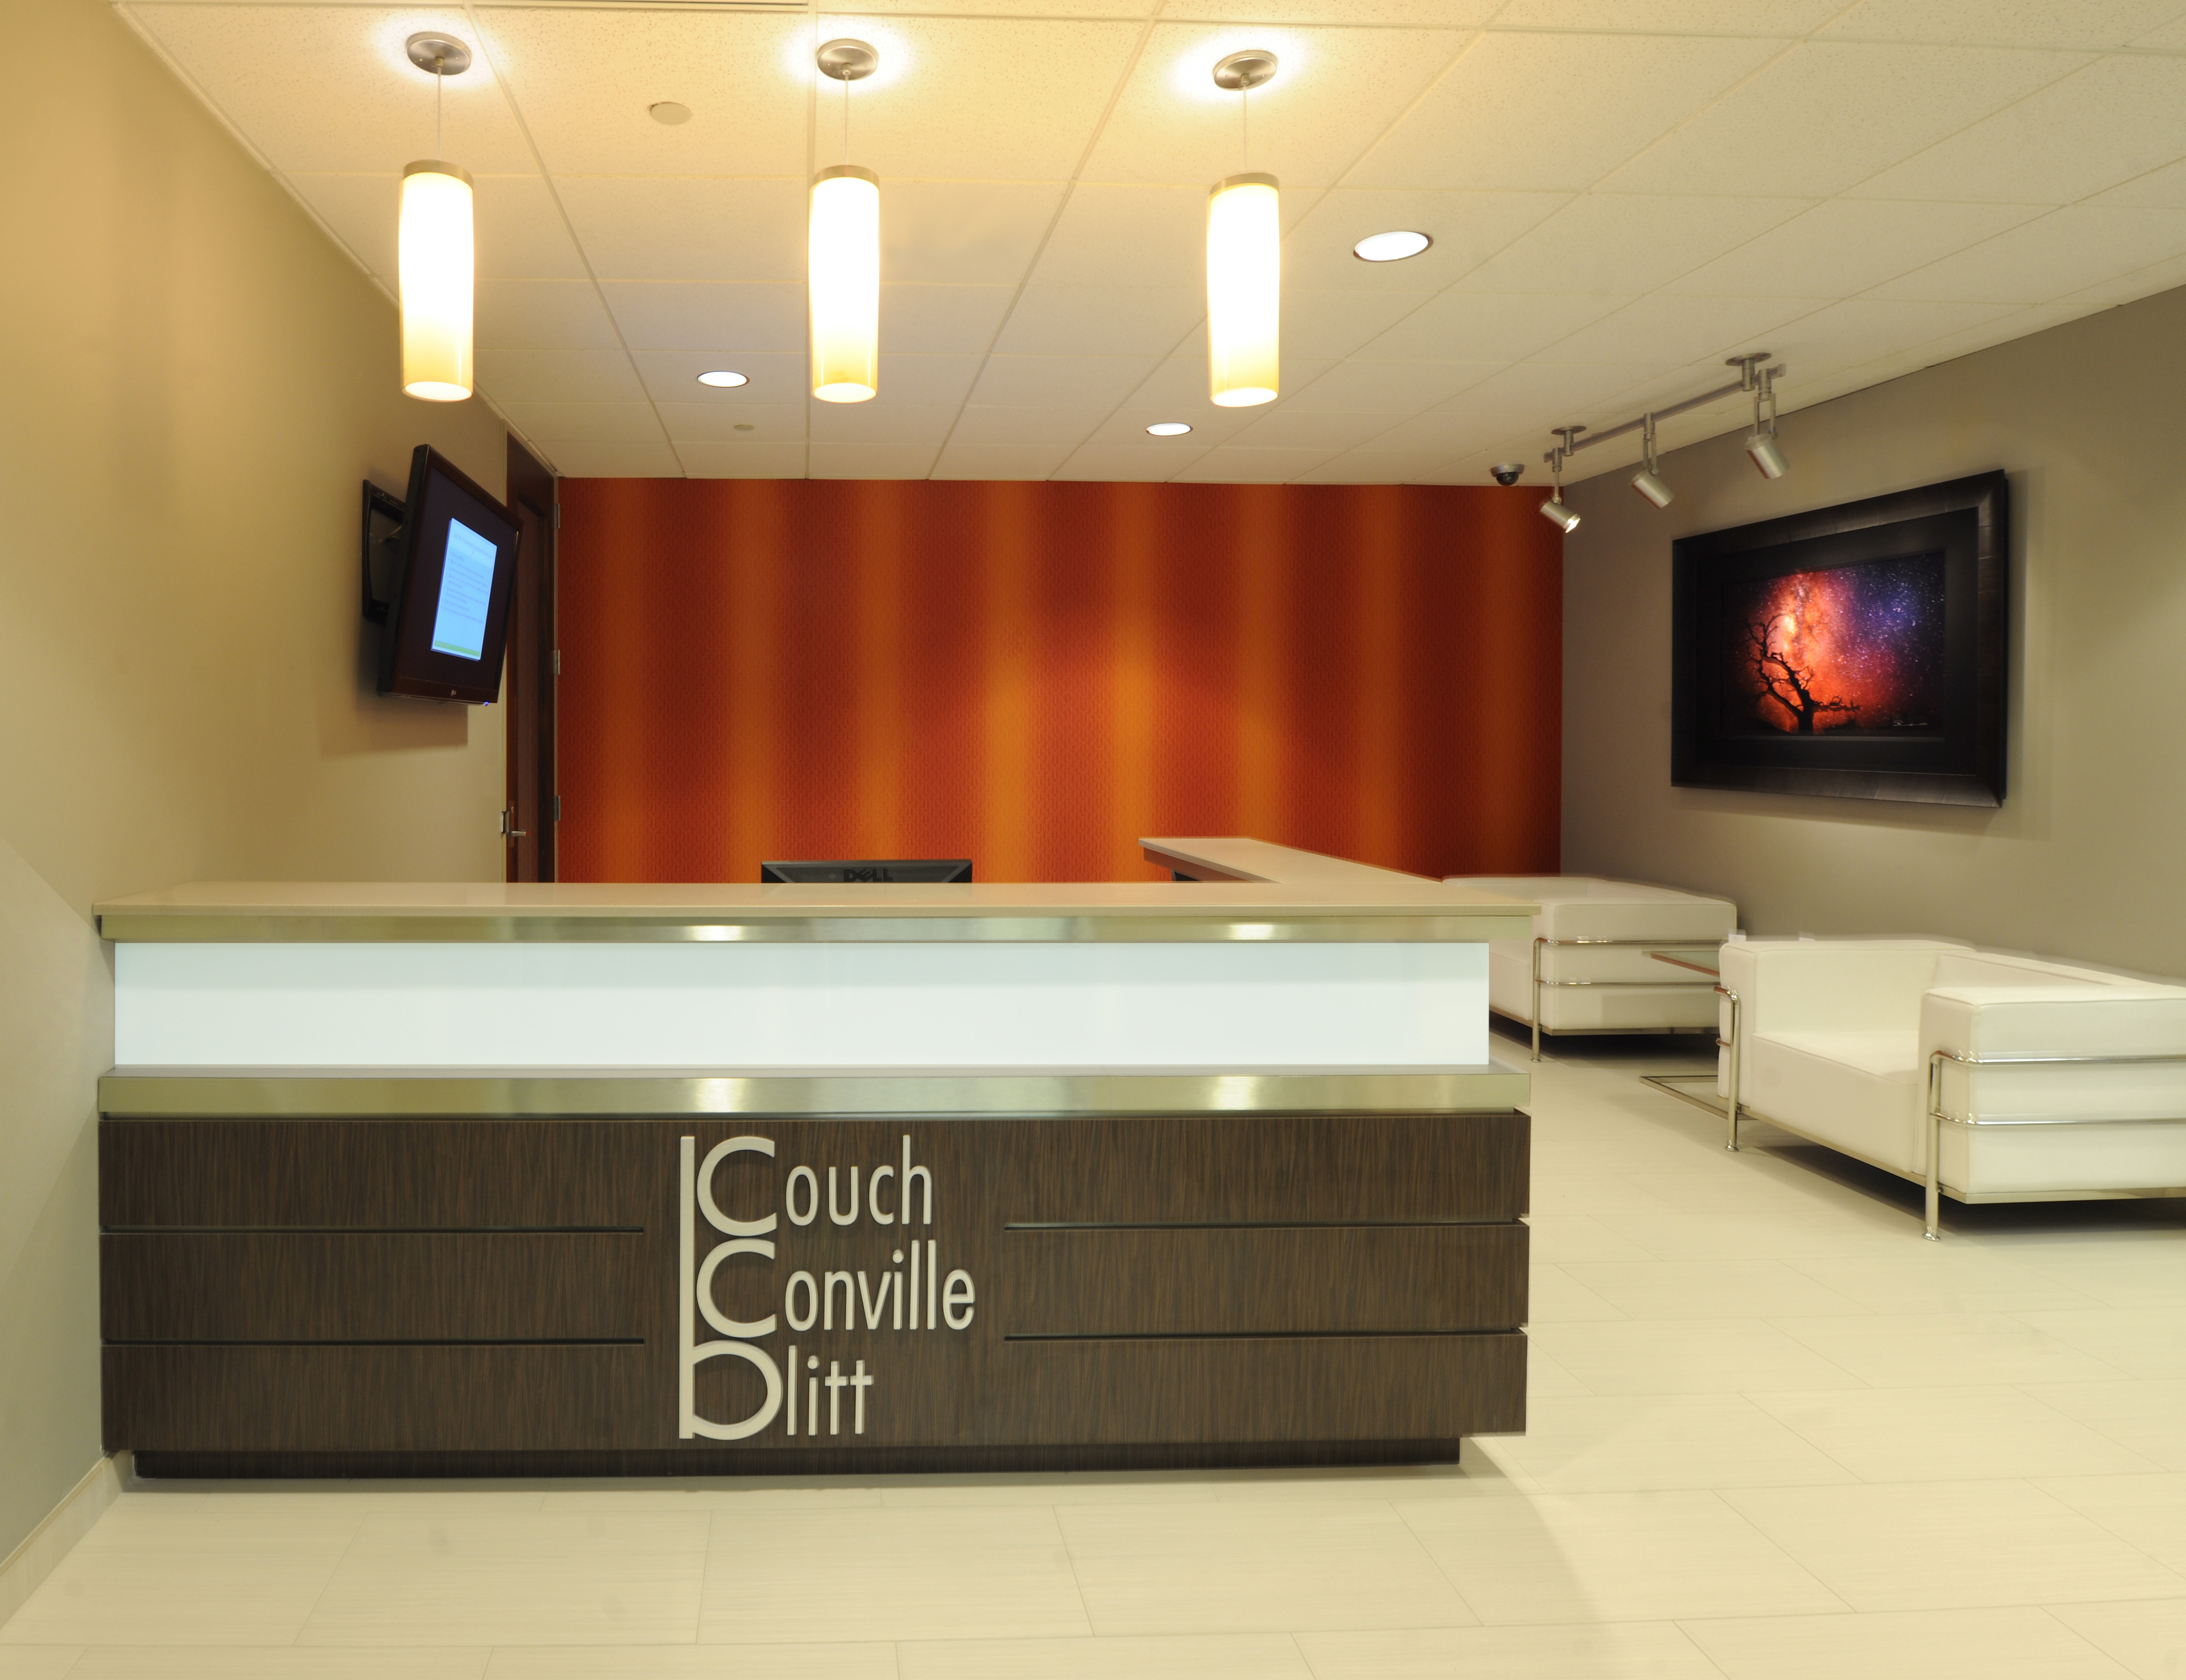 Couch Conville_1